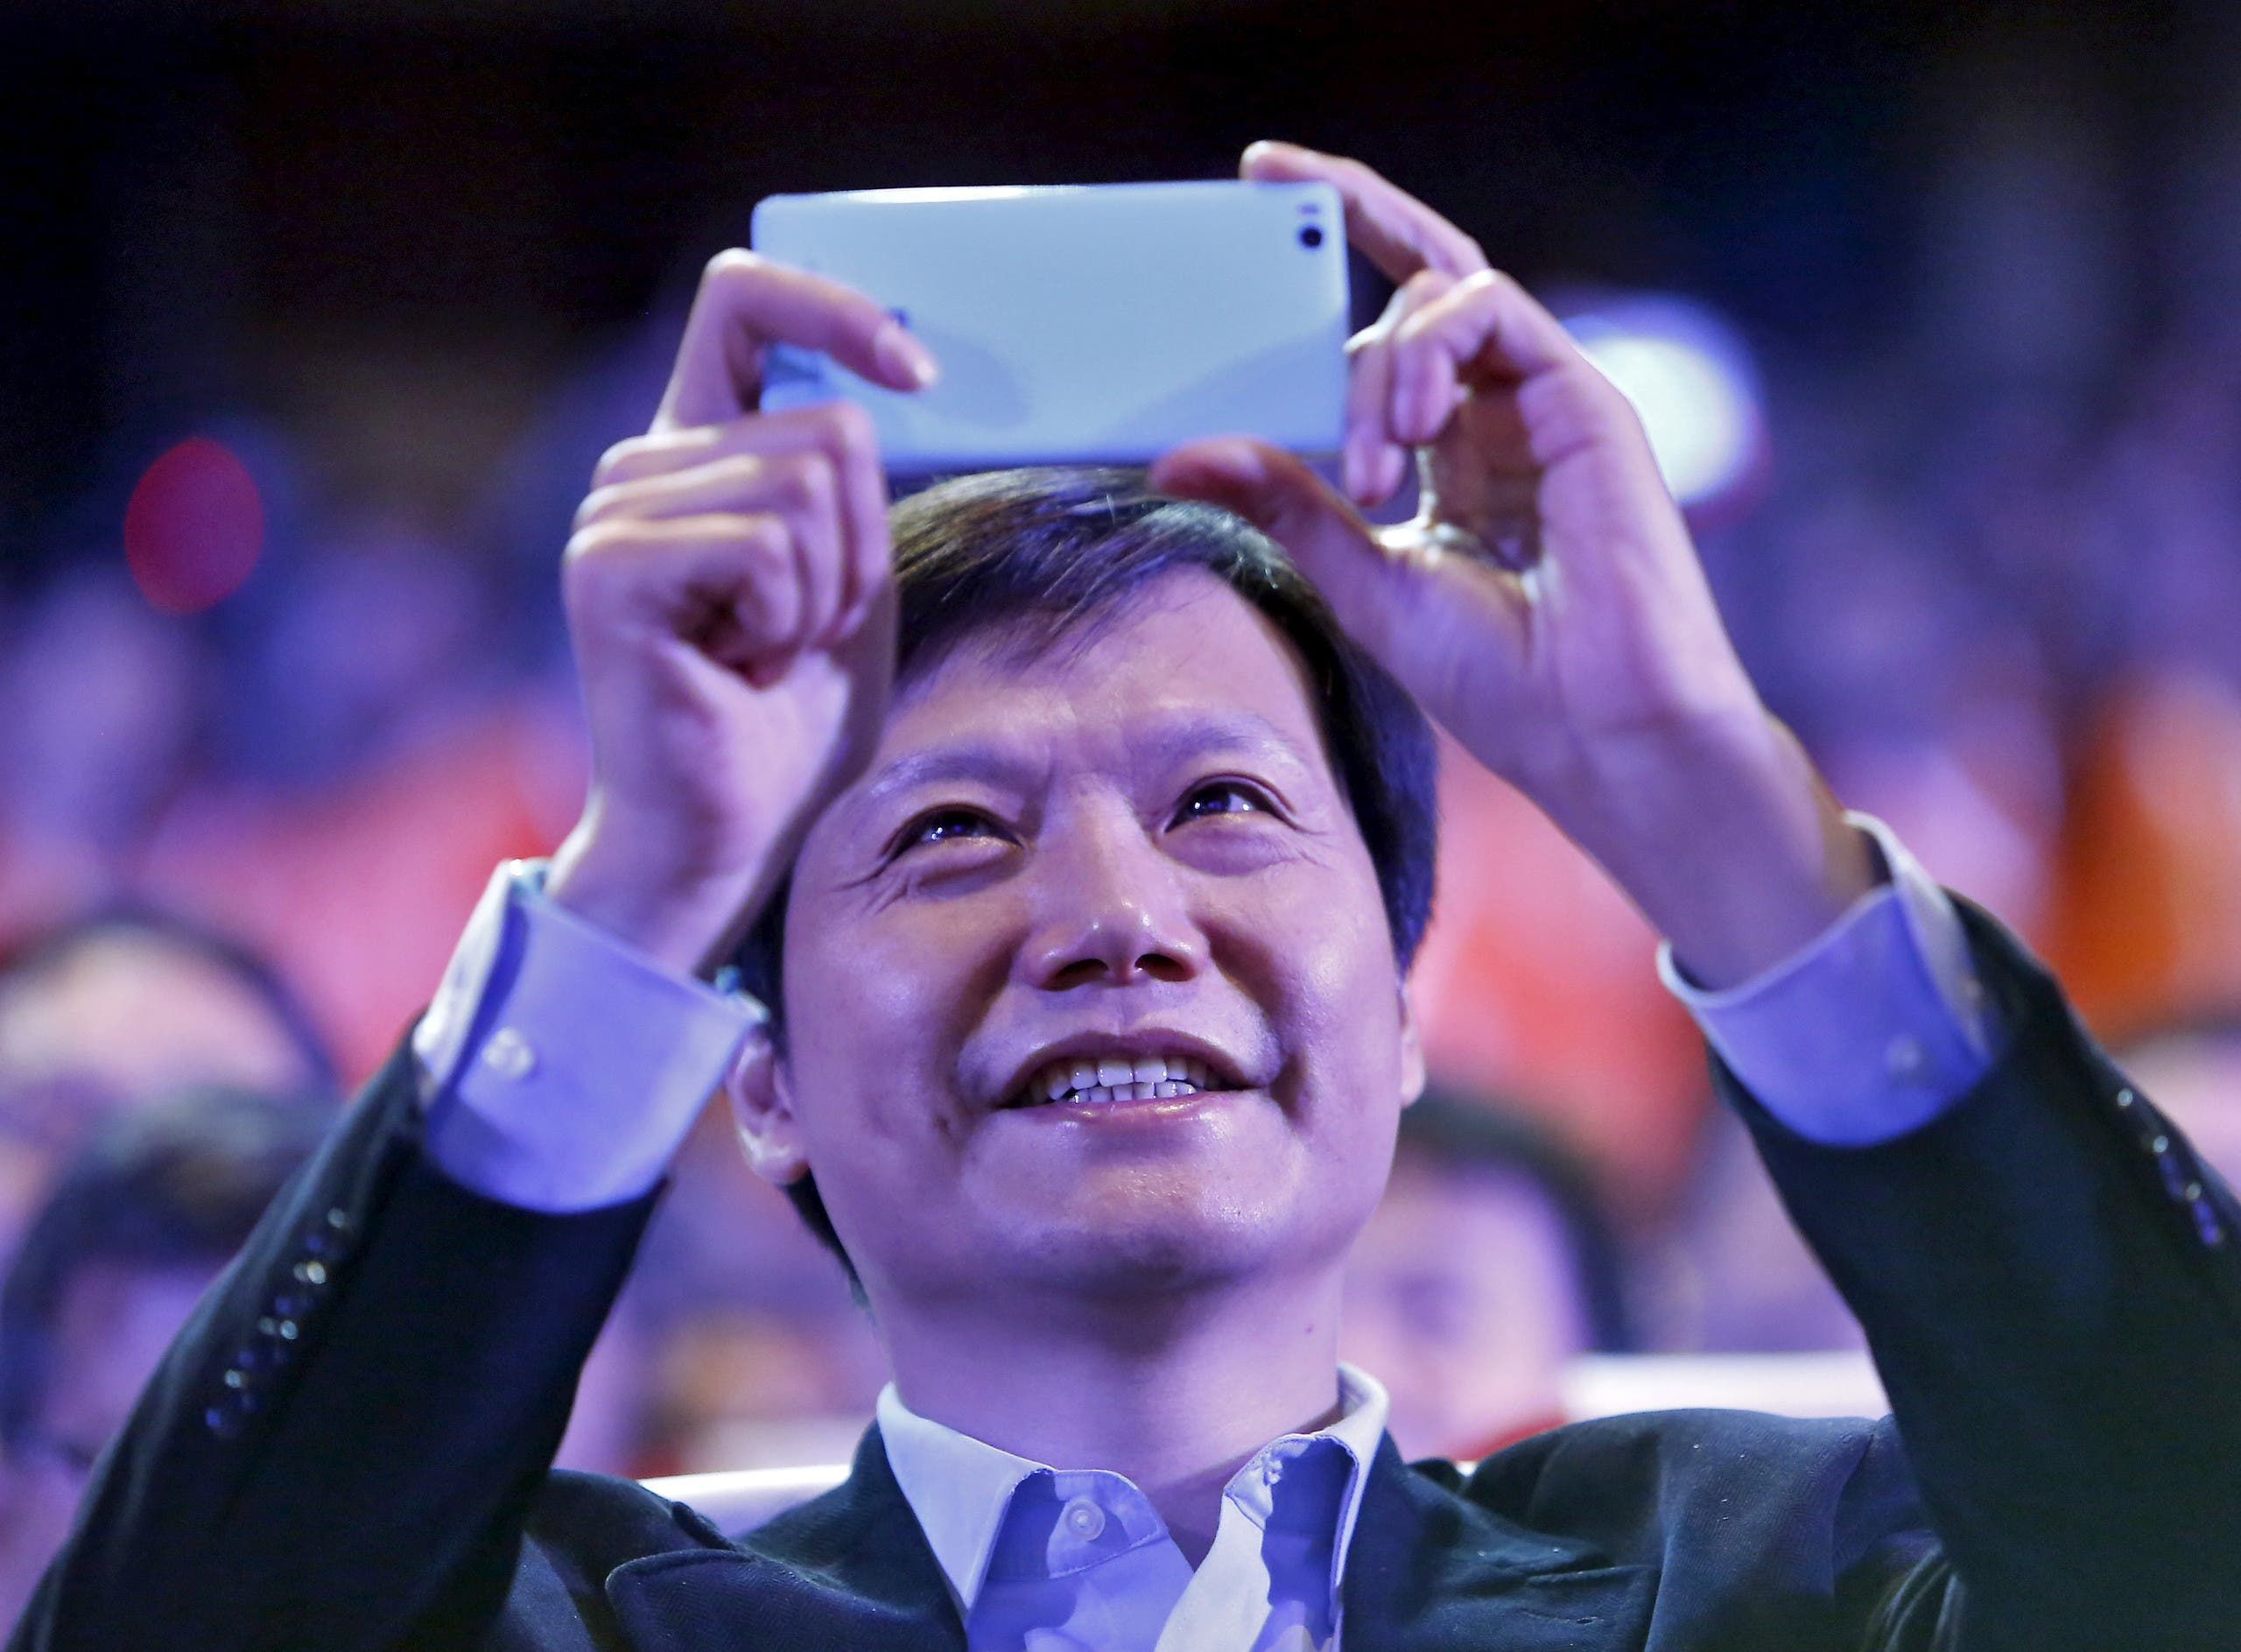 Lei Jun, founder and chief executive officer of Xiaomi, uses a Mi 4i phone during its launch in New Delhi , India. (File photo: Reuters)